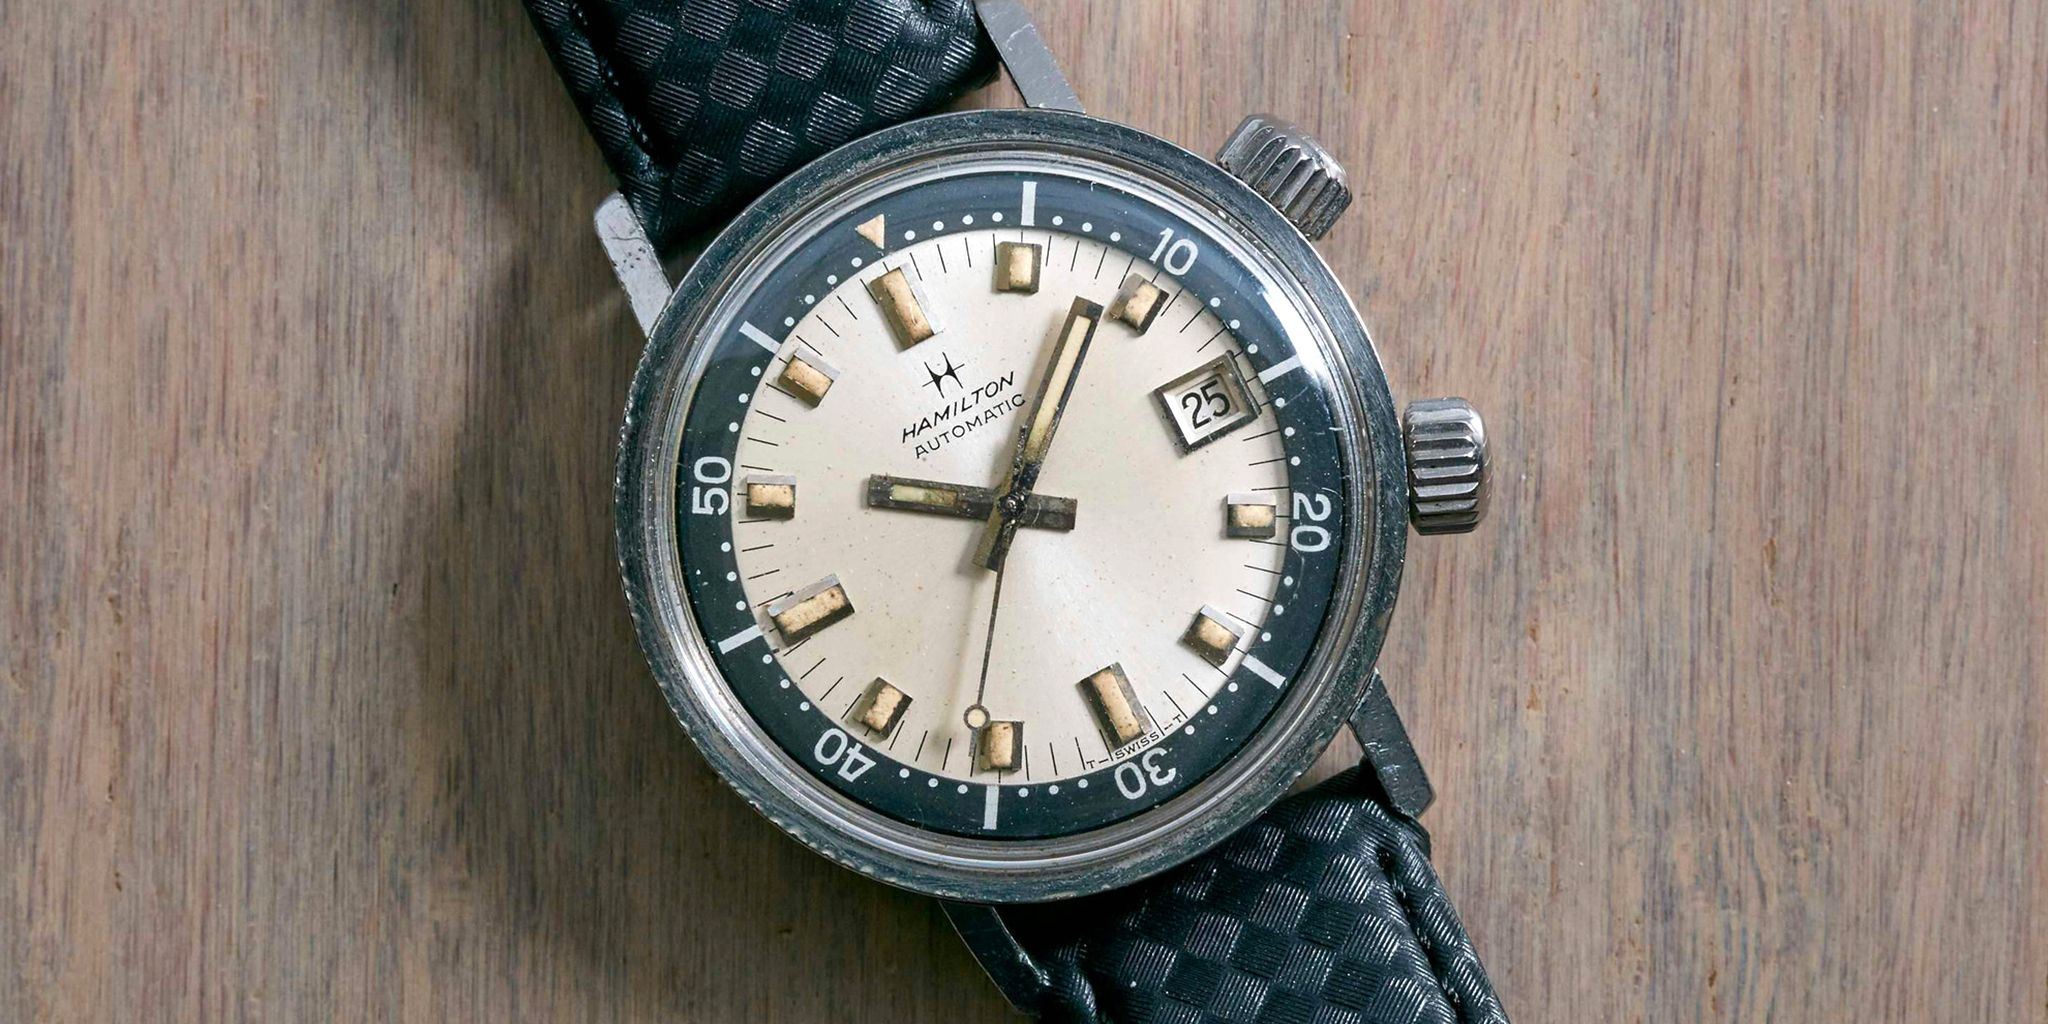 actually with way under found for admit lead the best a my weekly purchase our patrol gear i vicariously sub to shop without part old me and vintage commit is ll style having full watches readily